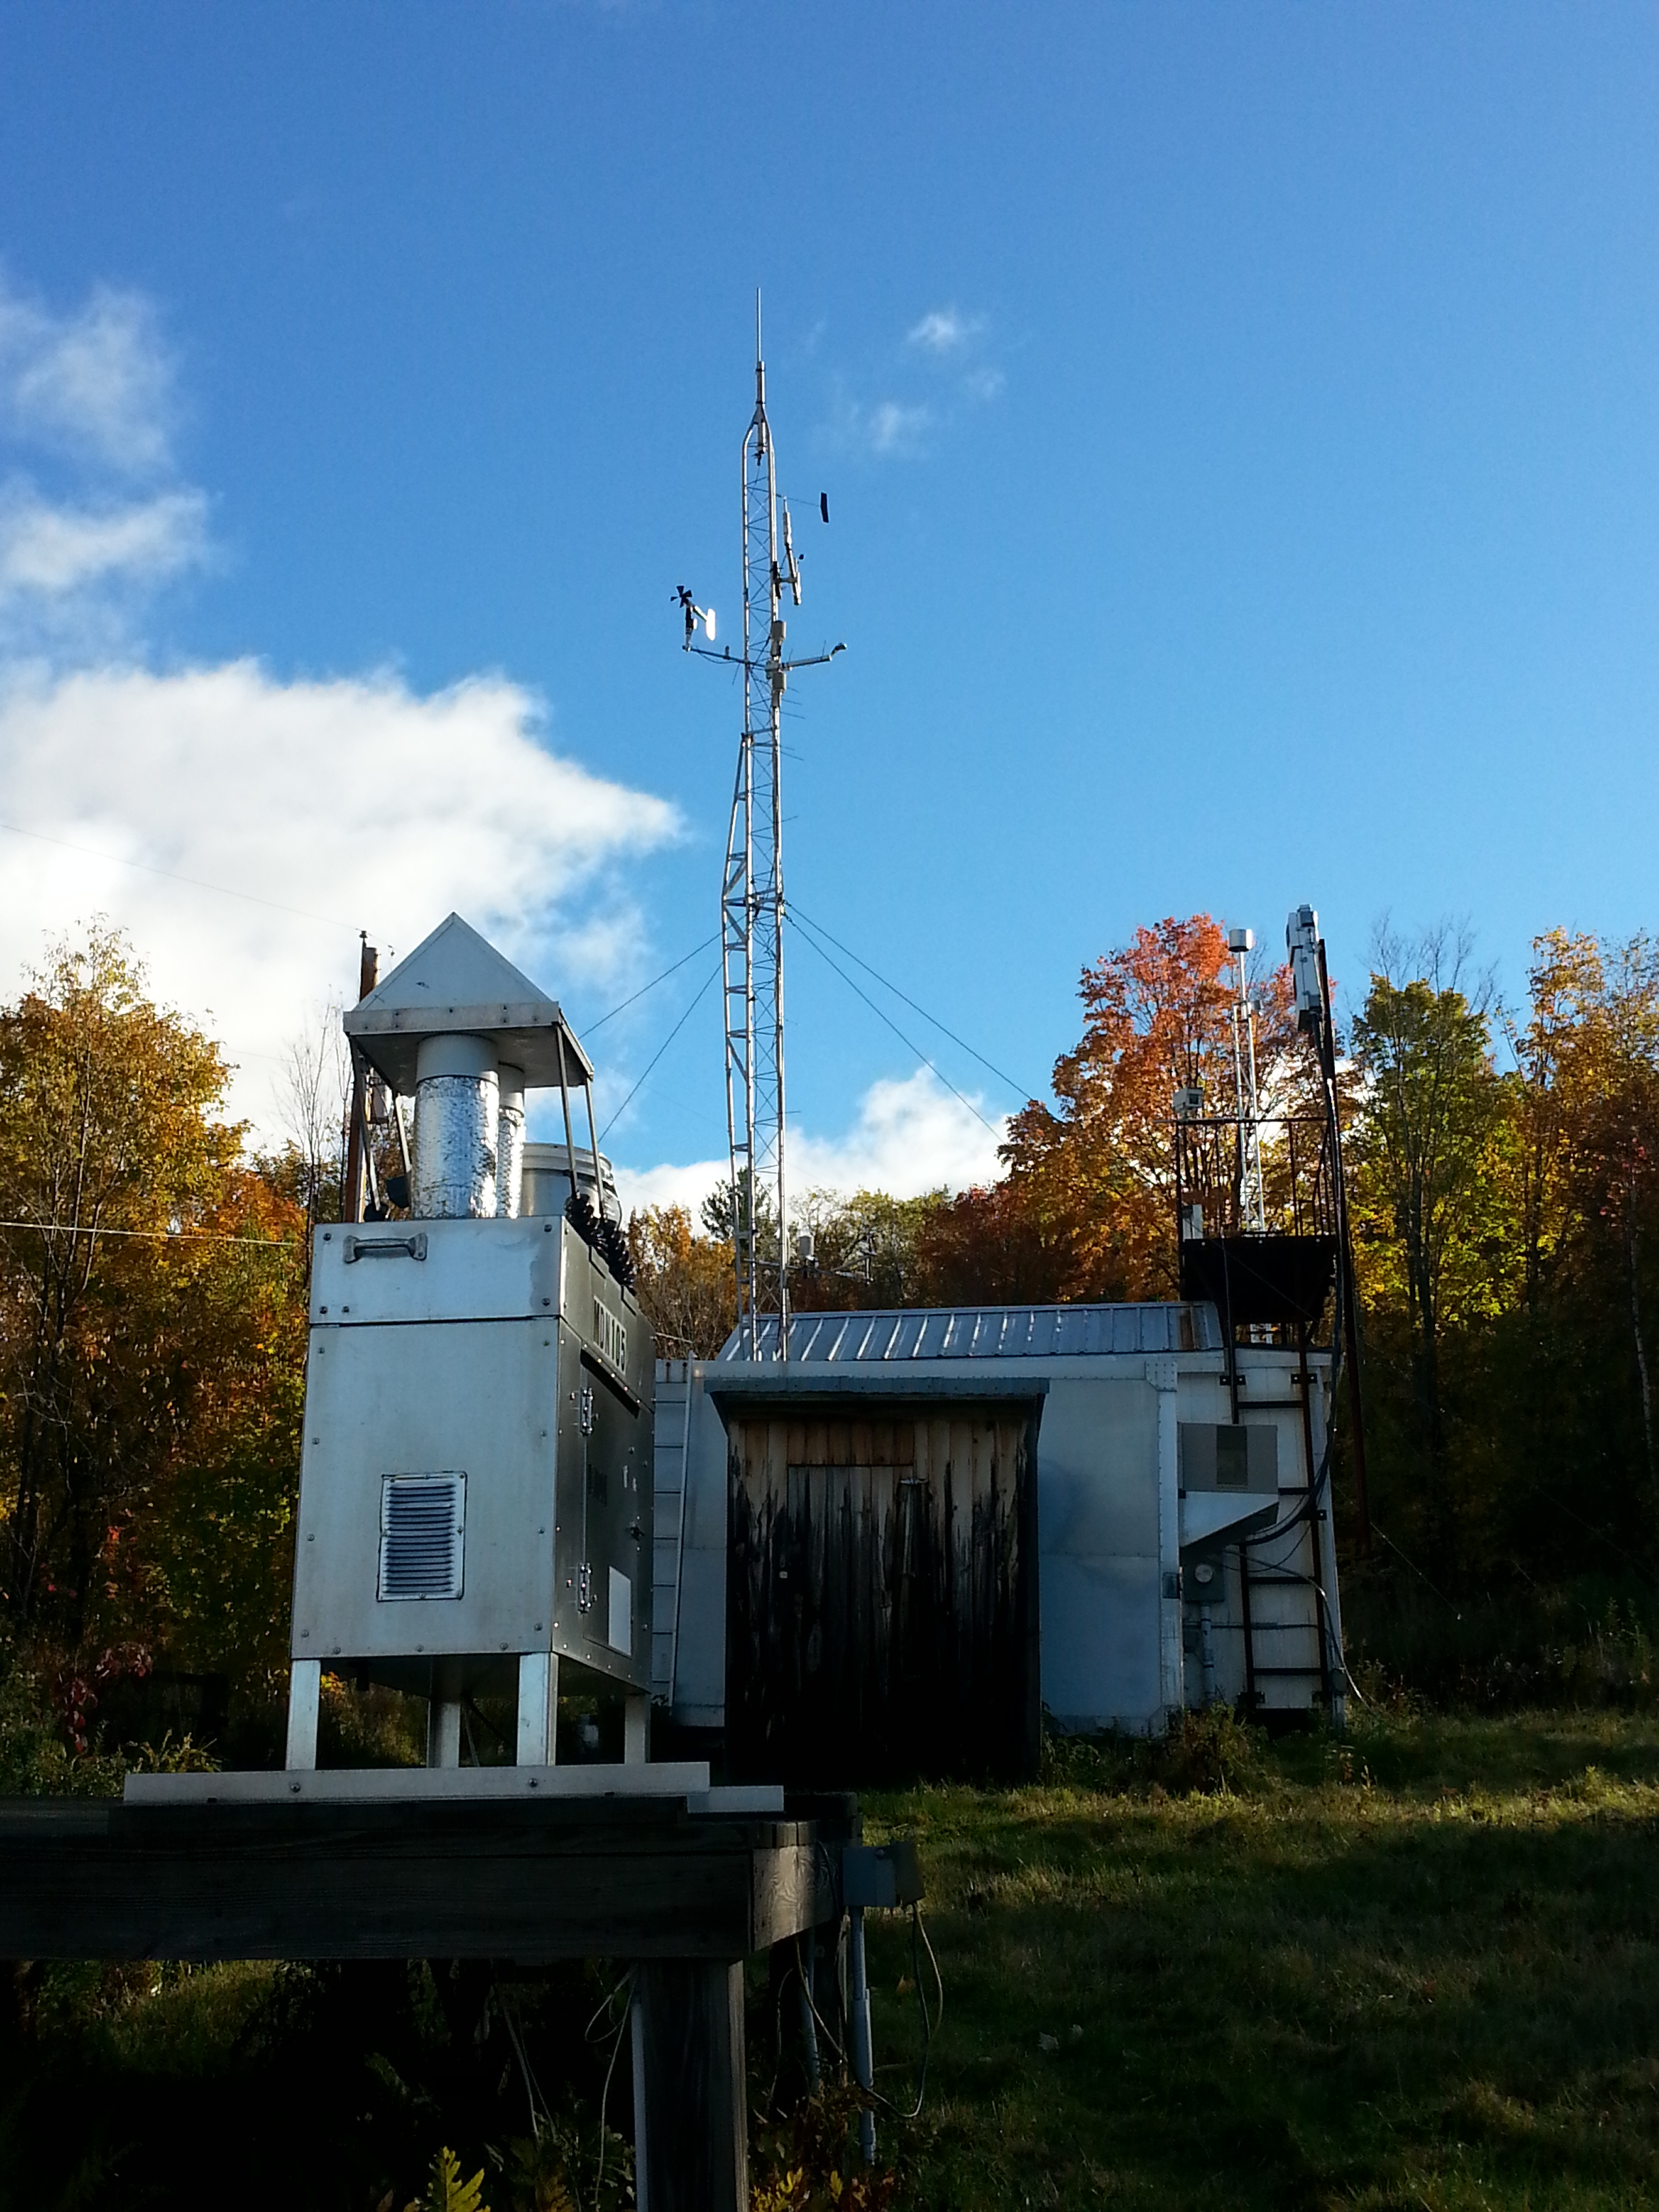 Main page image for Proctor Maple Research Center Meteorological Monitoring: (399 m)